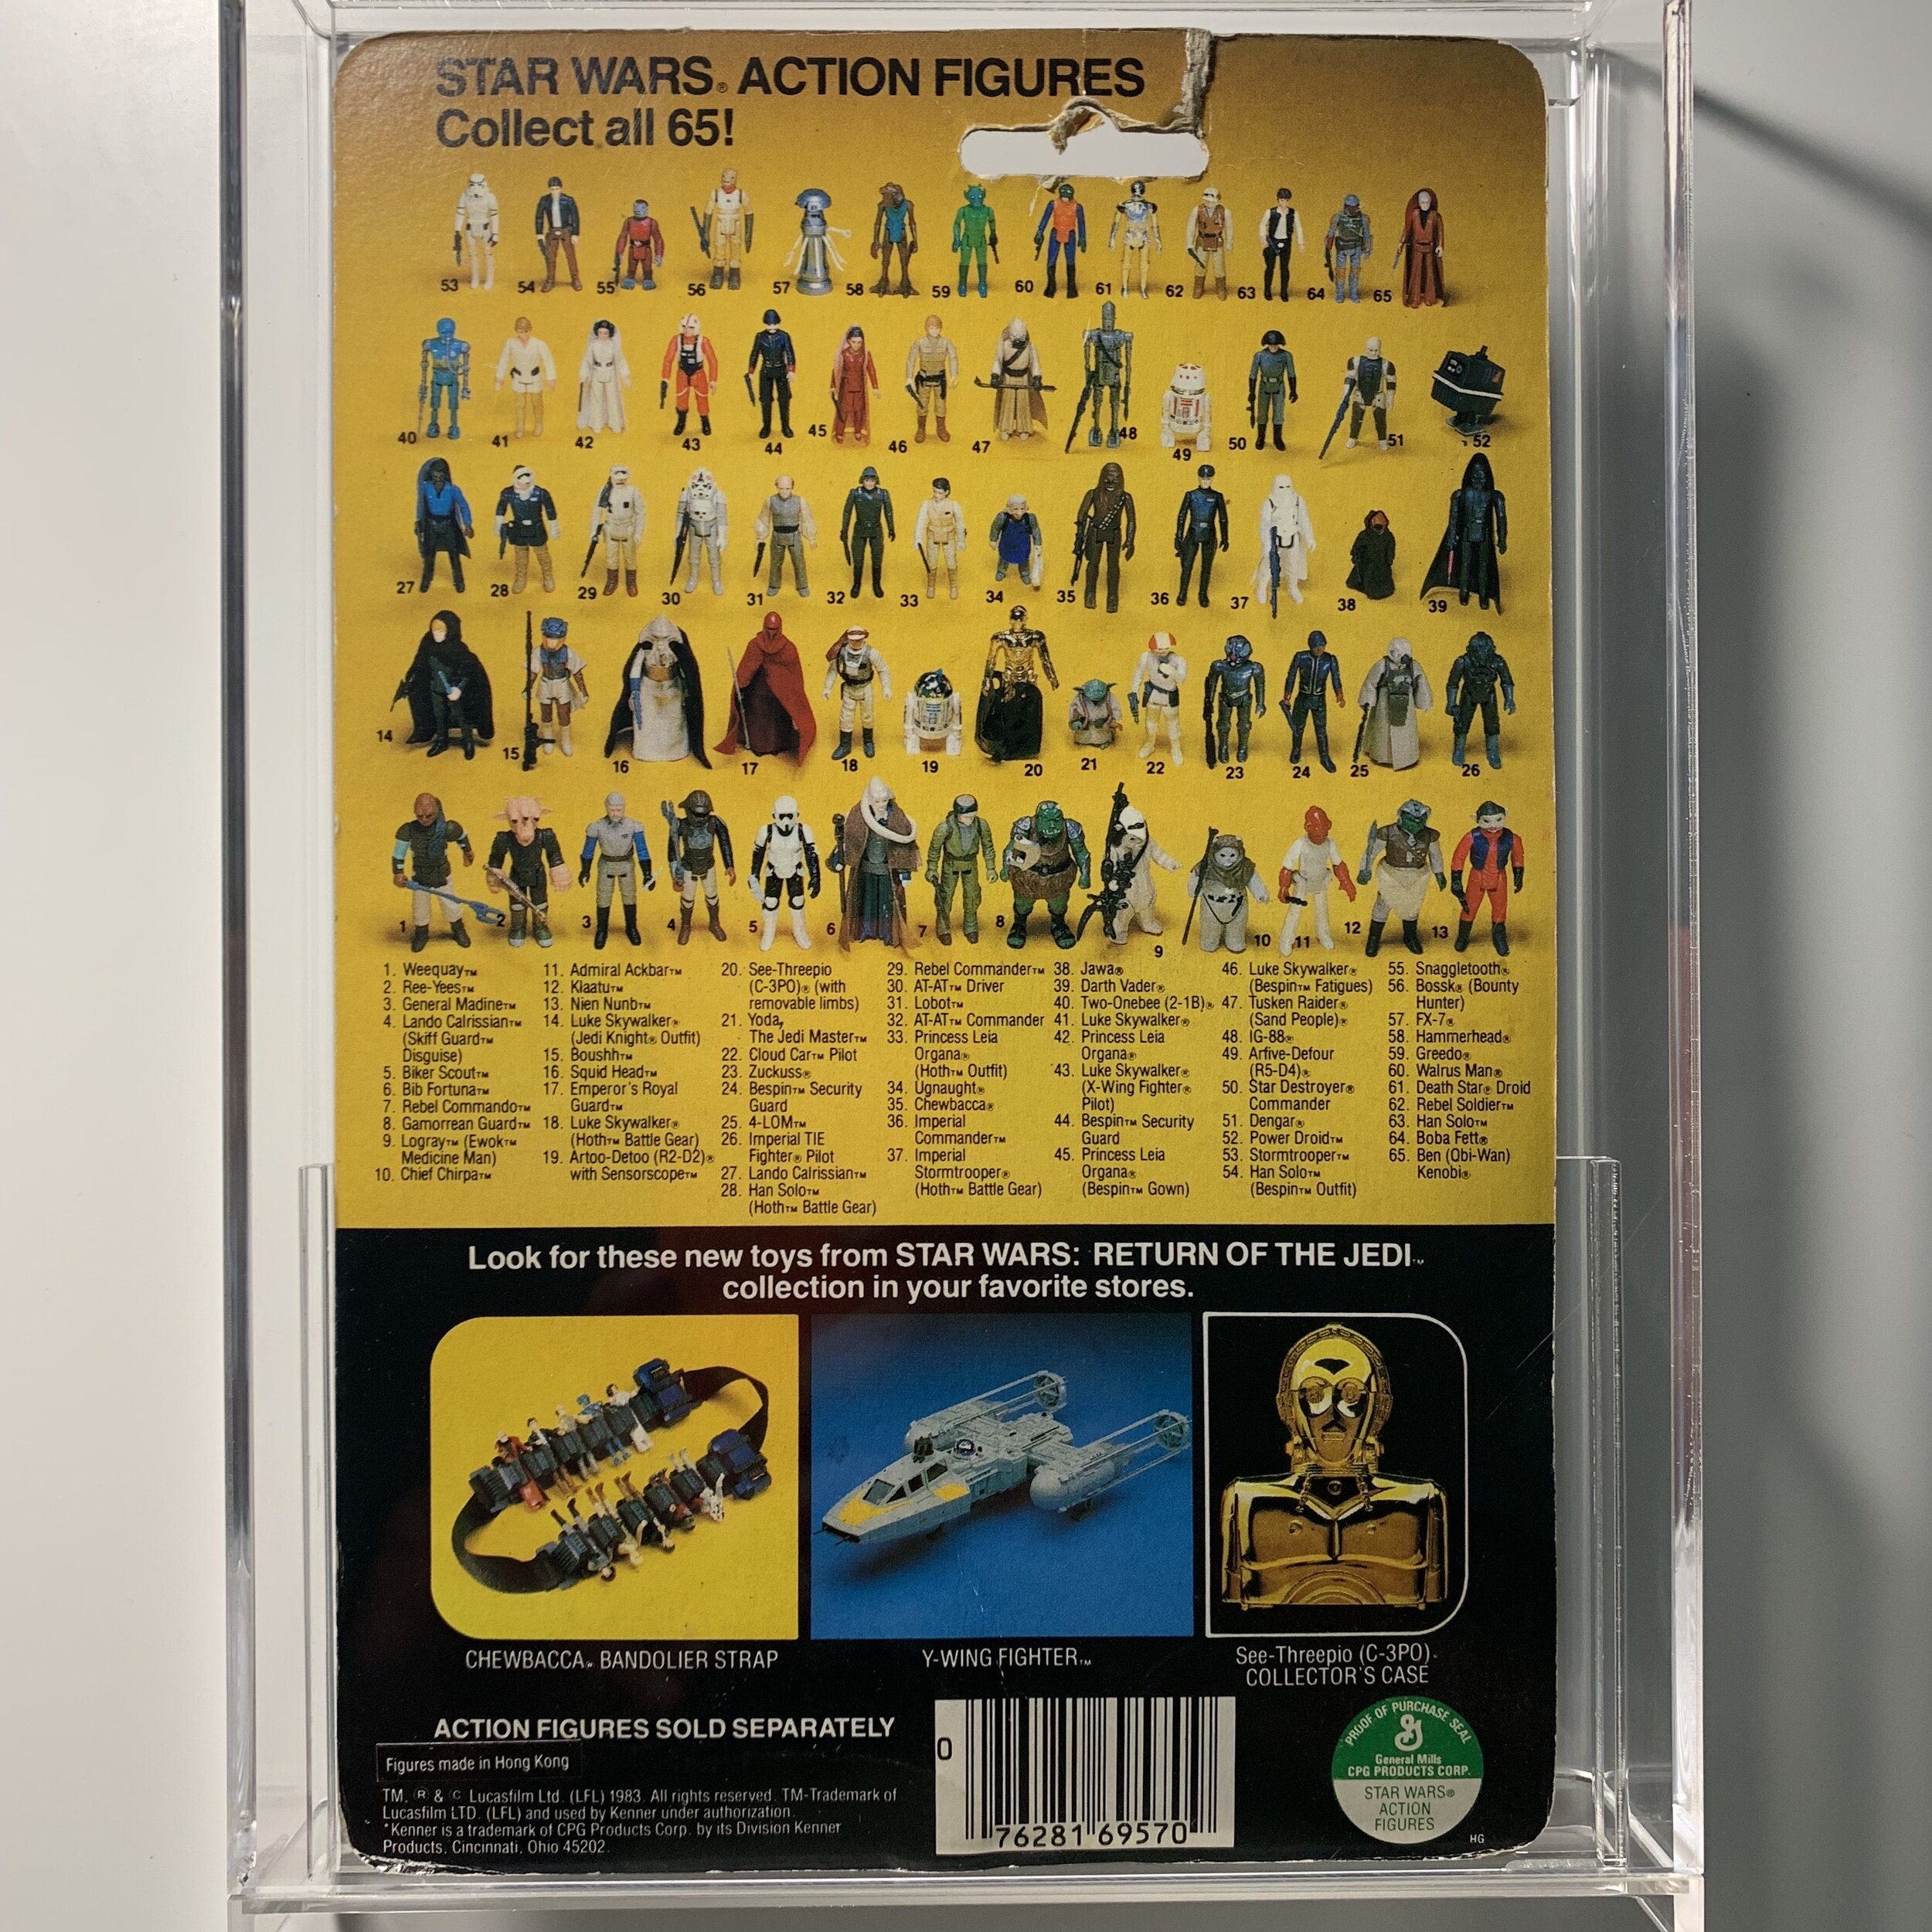 Bossk Bounty Hunter Moc Star Wars Action Figure Rotj Retro Gram